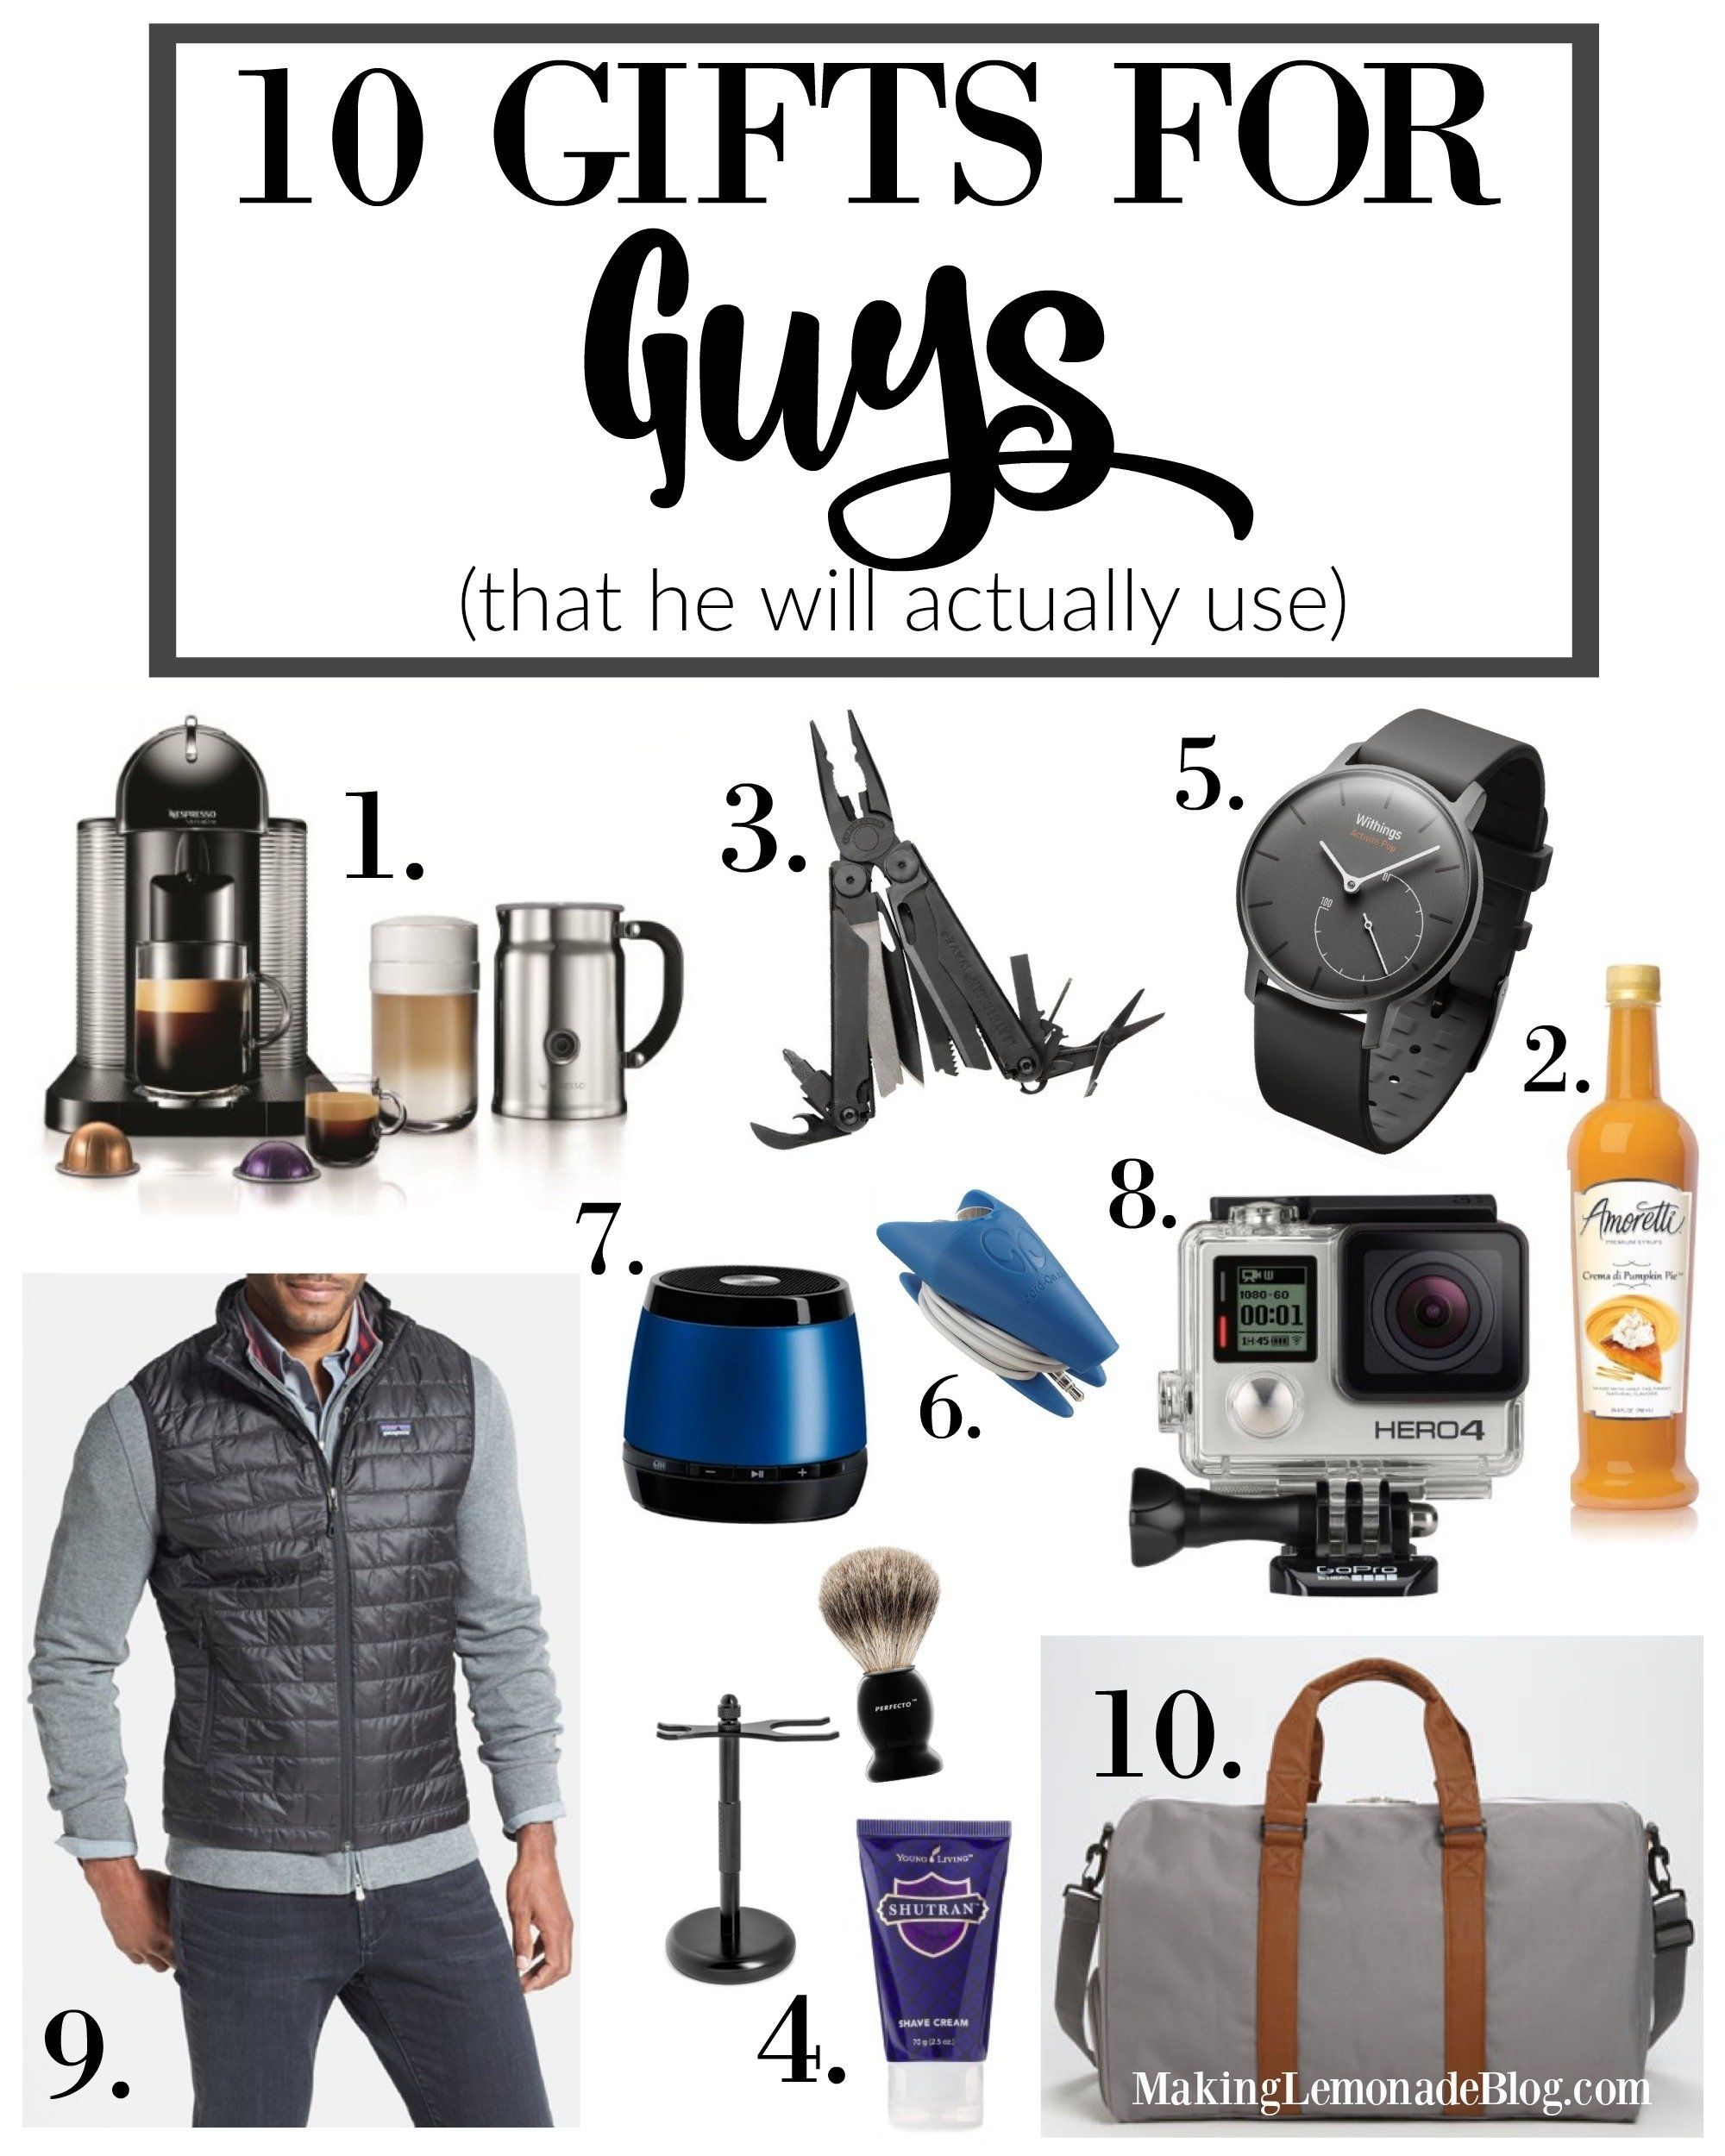 10 Gorgeous Great Christmas Gift Ideas For Men 10 best gifts for guys that hell actually use making lemonade 2020